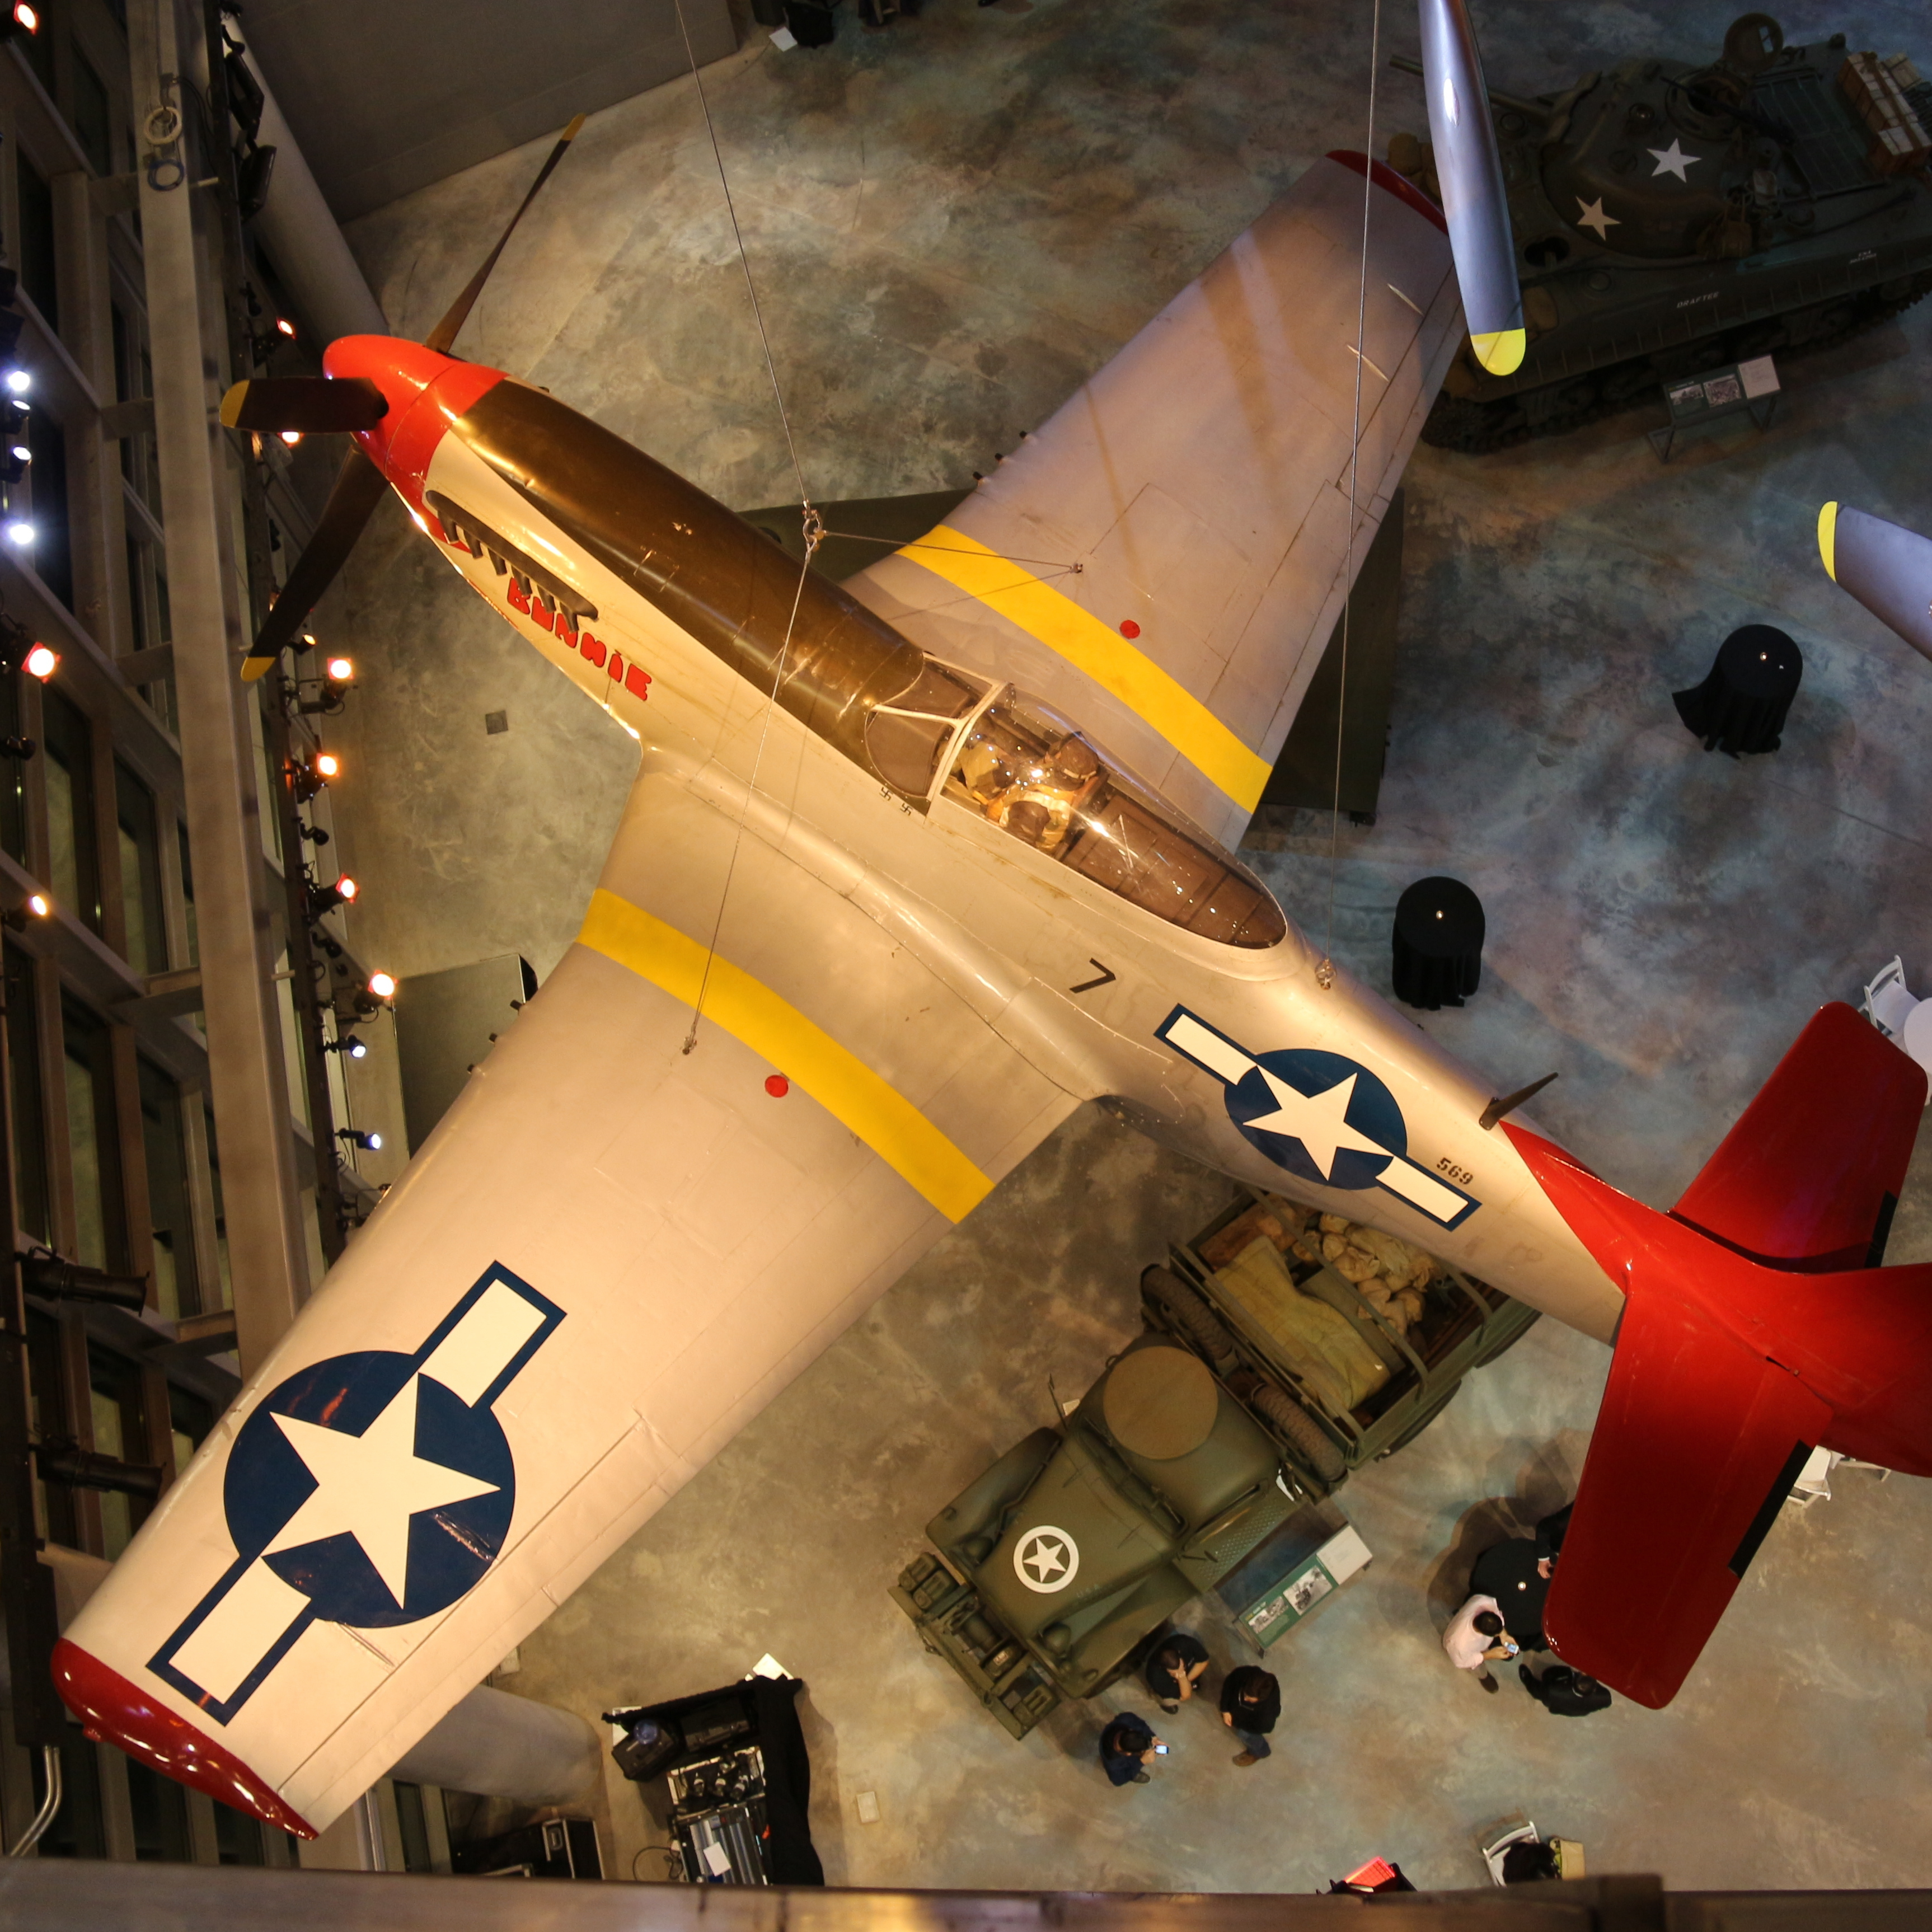 Six World War II airplanes hang from the 96-foot-high ceilings in the U.S. Freedom Pavilion.